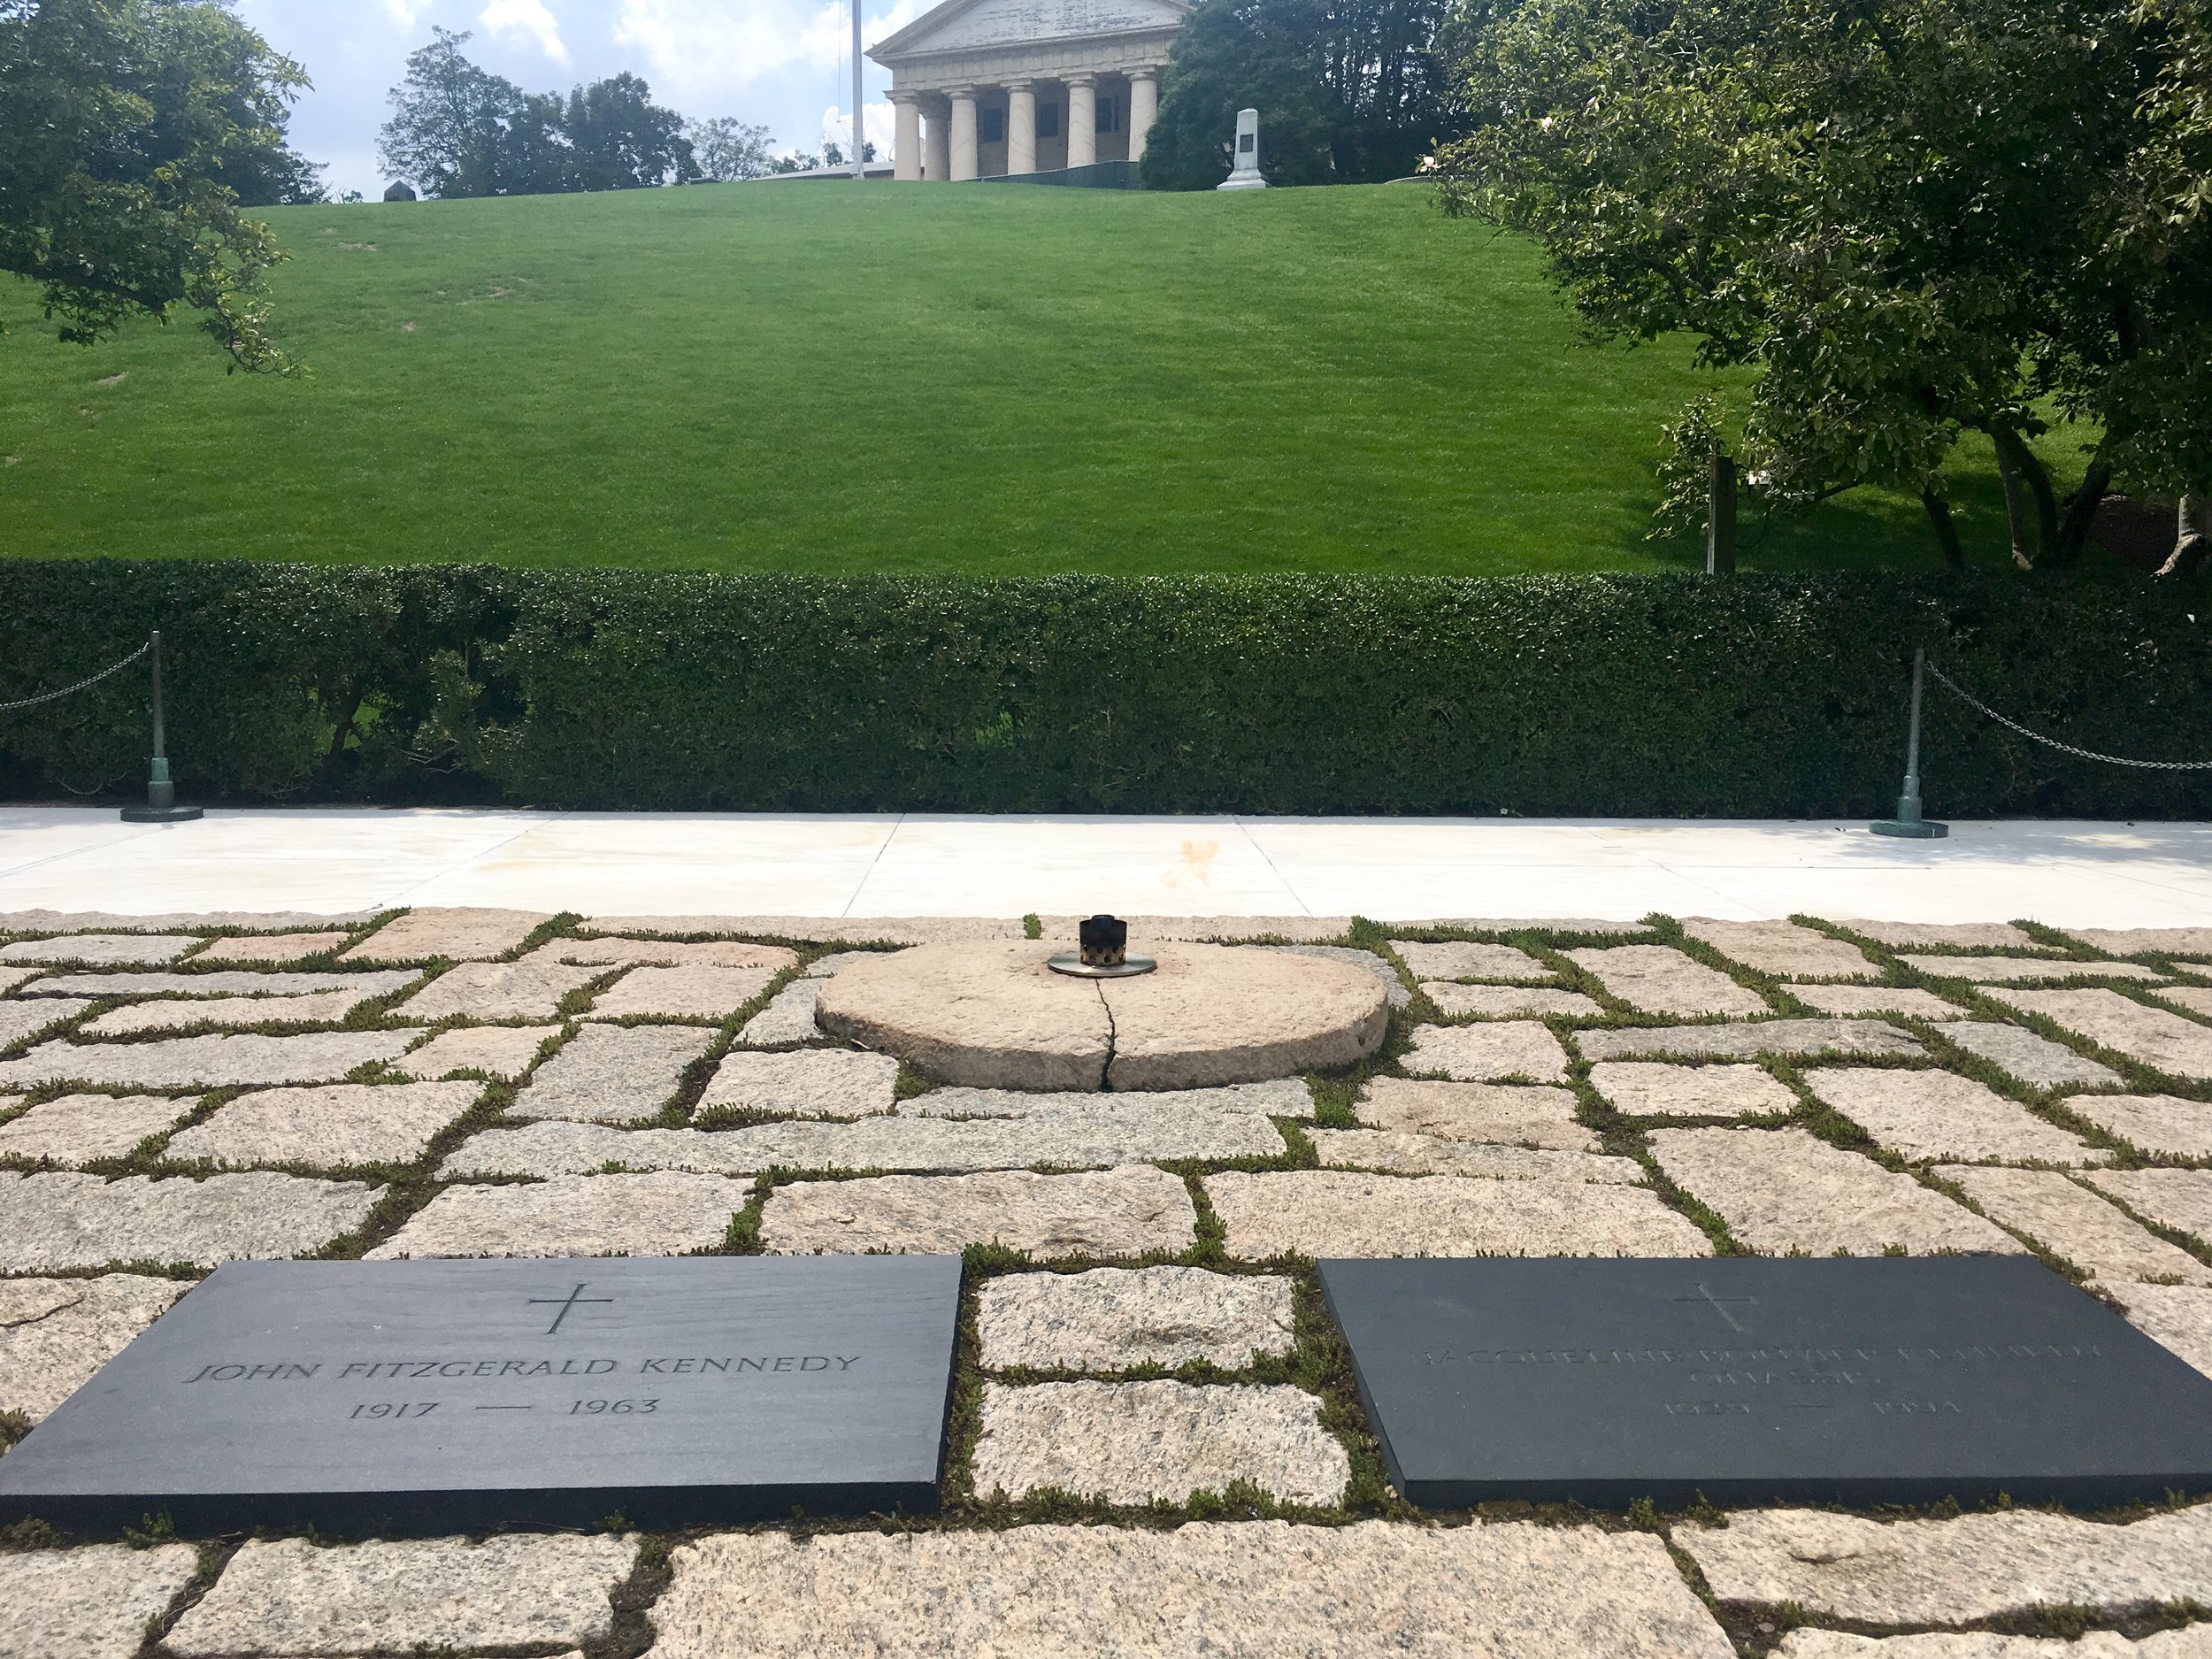 John F. Kennedy Grave Site and Eternal Flame- Arlington National Cemetery